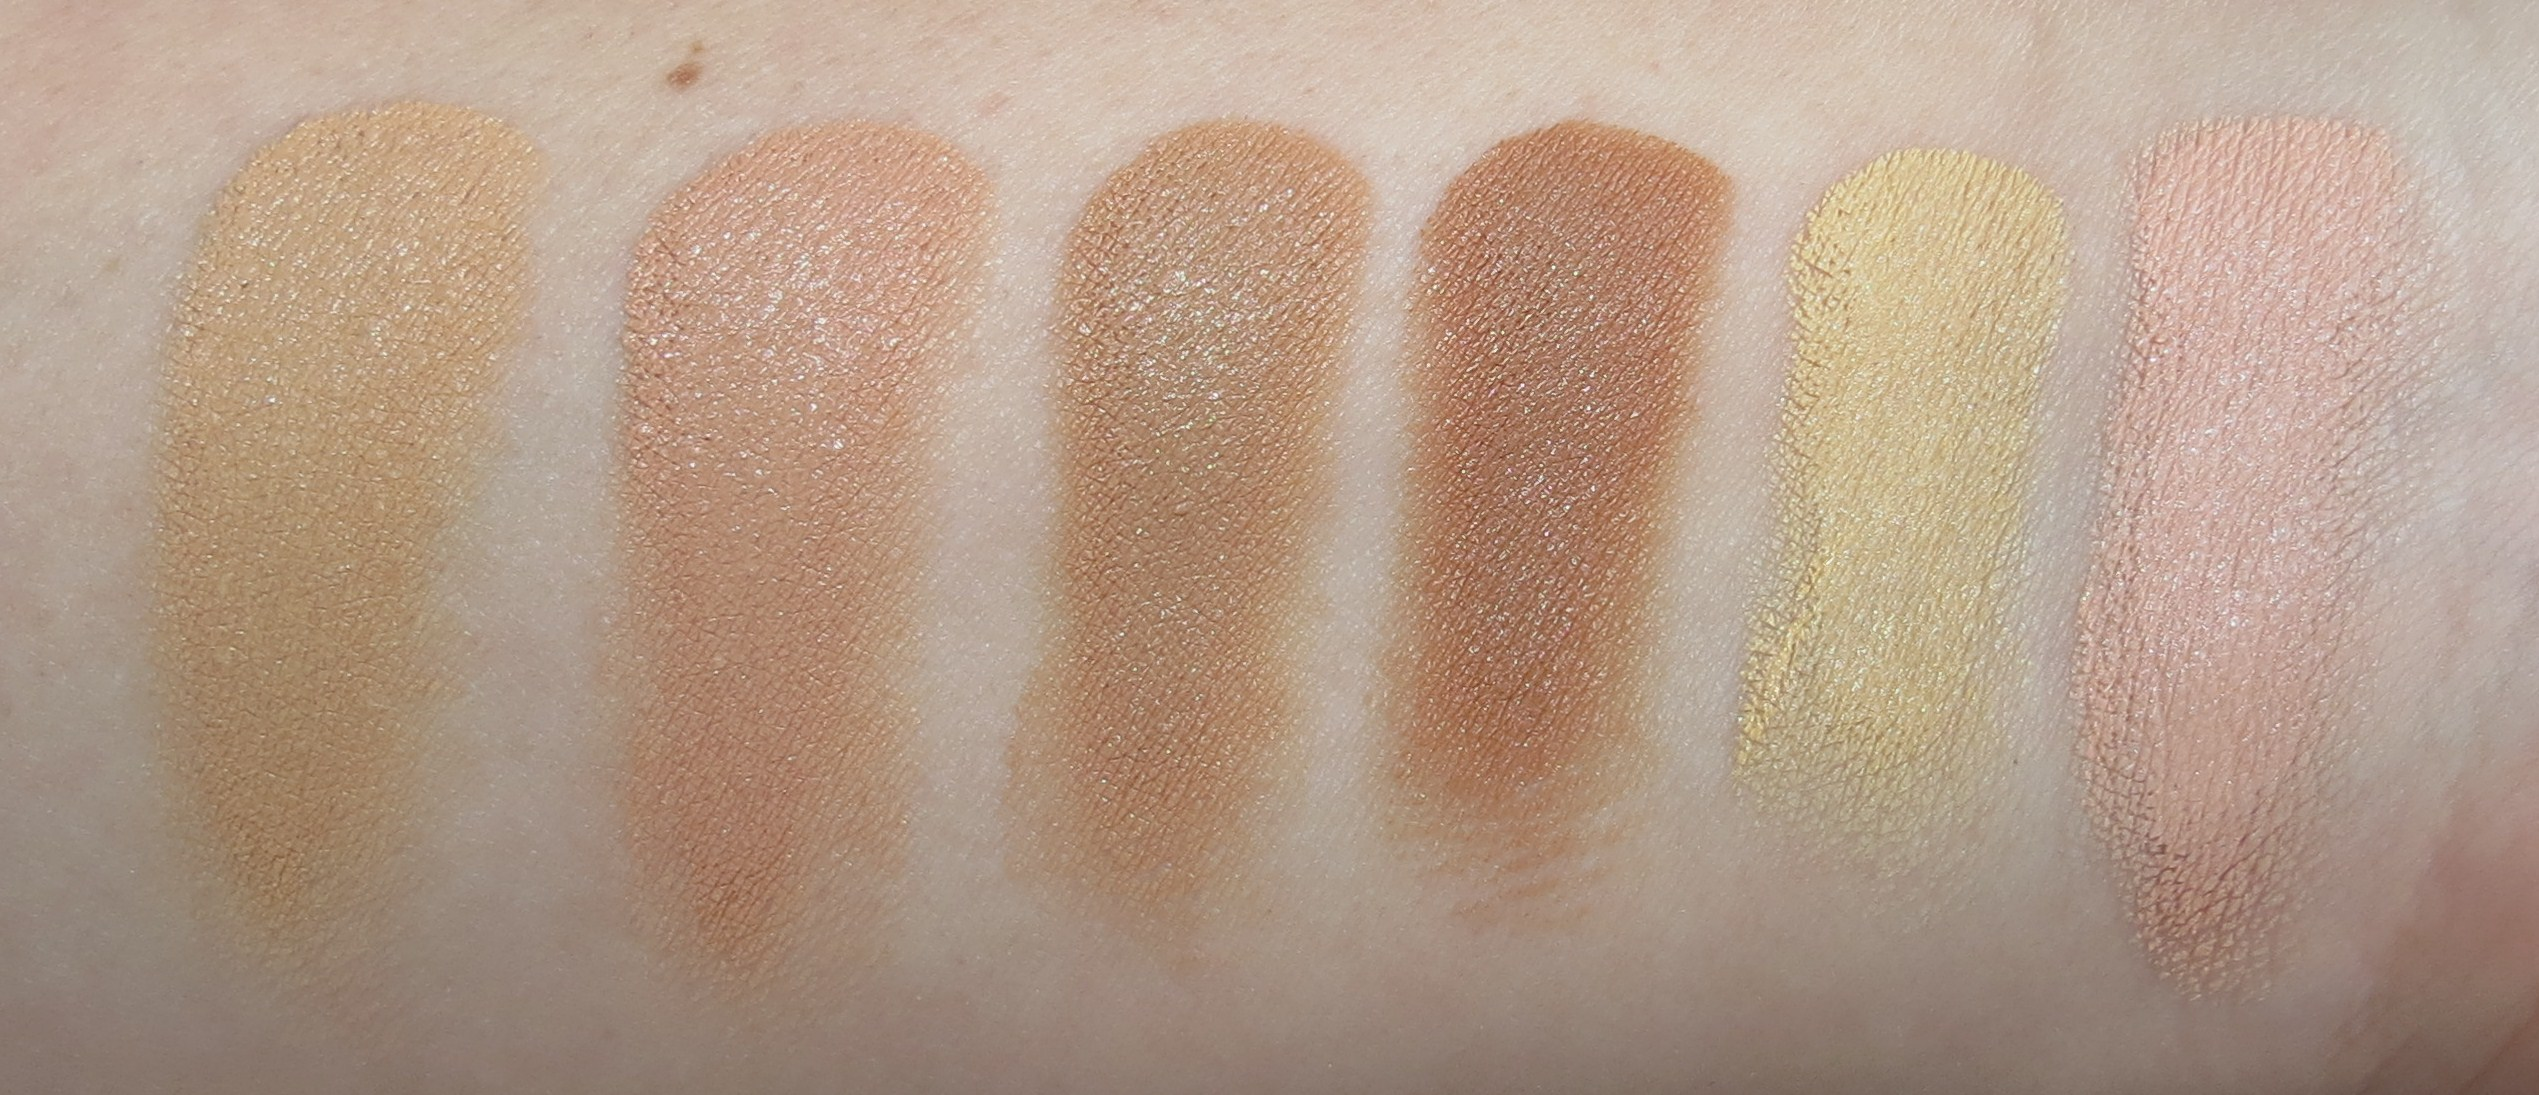 Mac Medium Pro Conceal And Correct Palette Swatches Amp Review Blushing